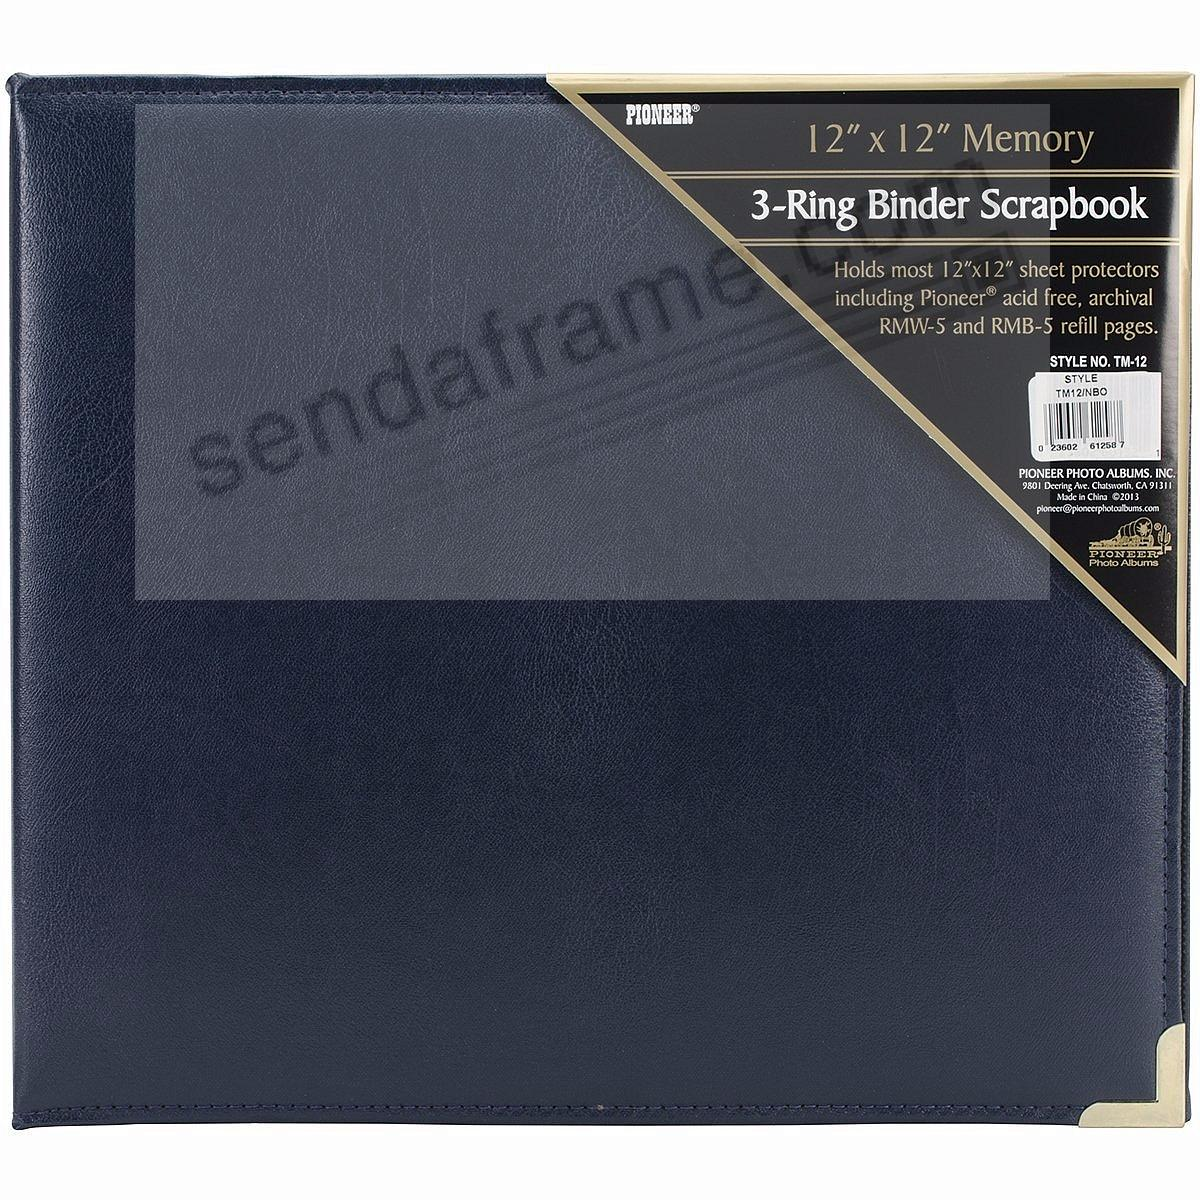 Navy-Blue wide-size 3-ring binder by Pioneer®